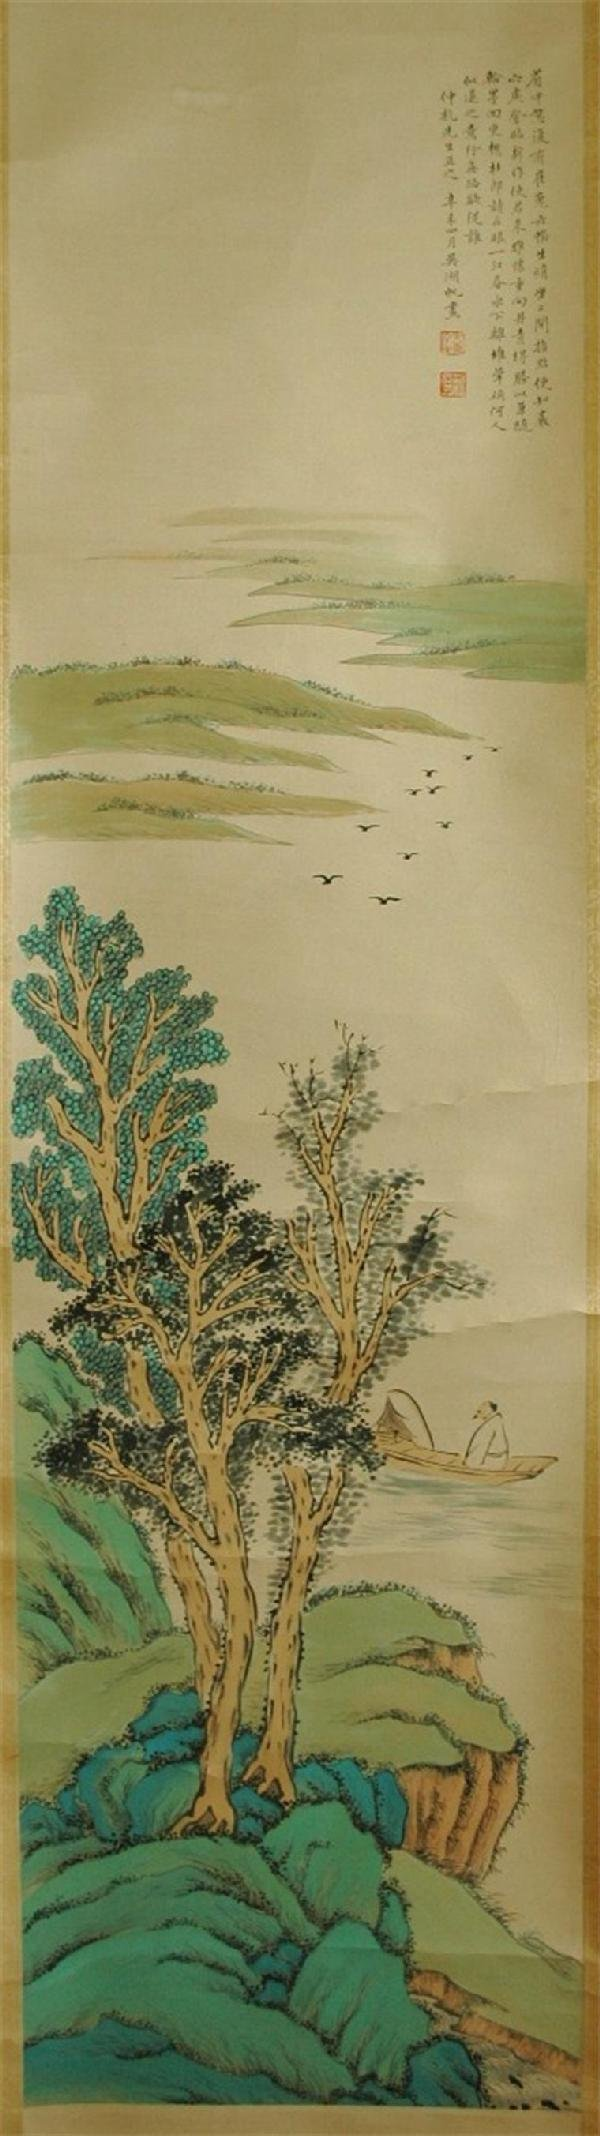 943: Chinese hanging scroll painting